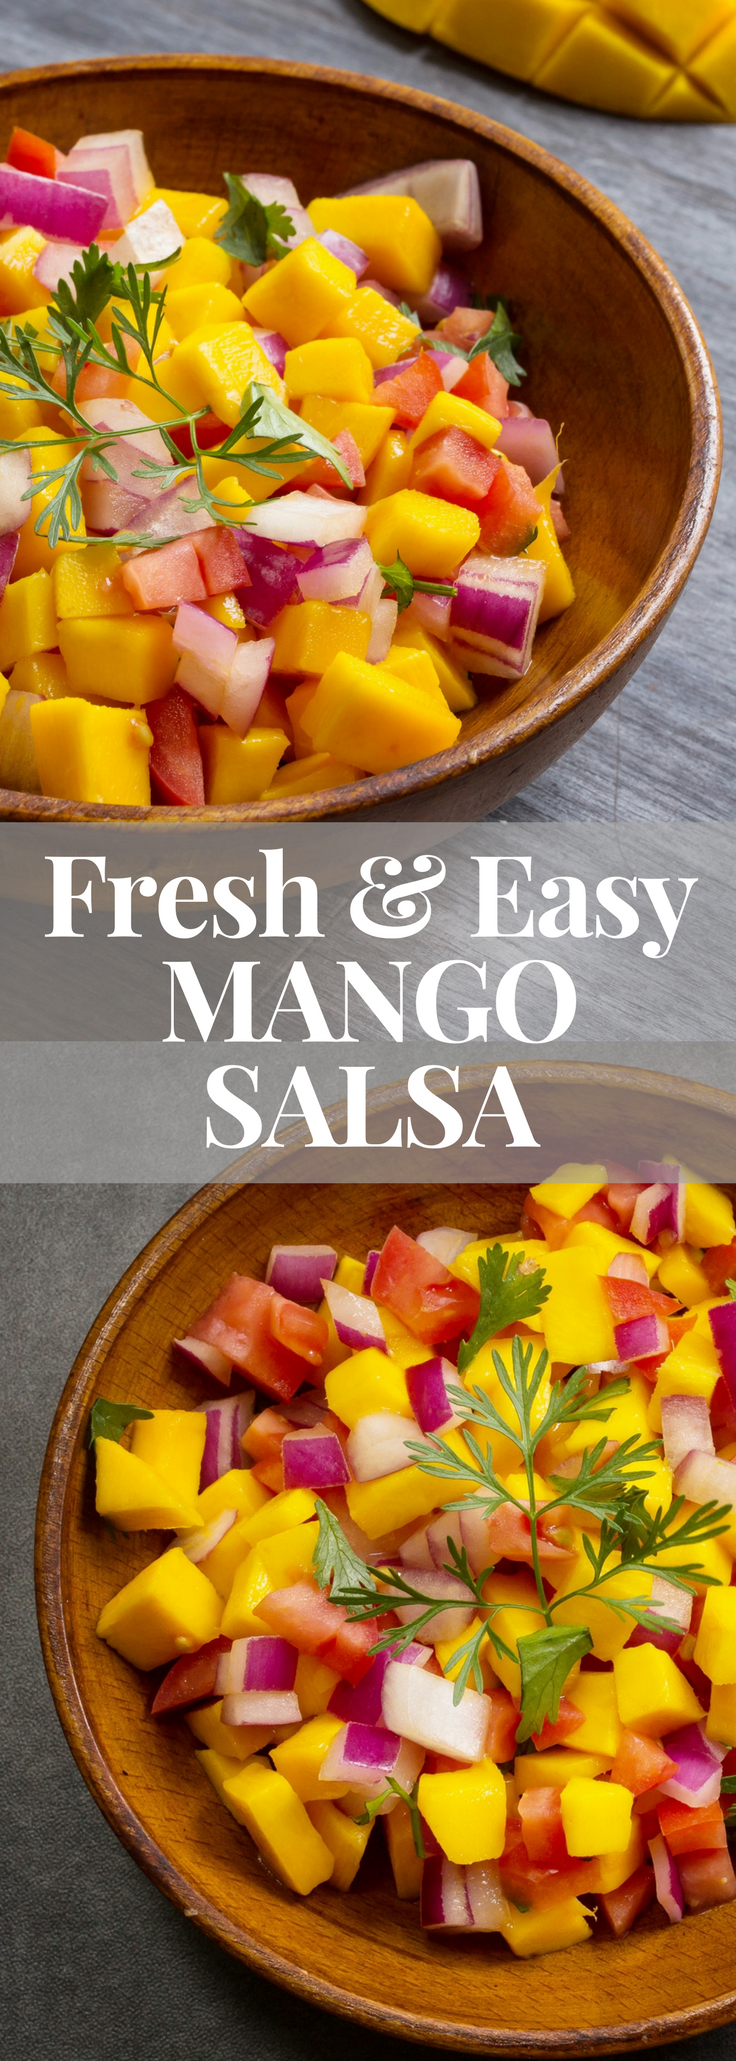 This fresh and easy mango salsa is perfect for entertaining - the juices from theripemango, tomatoes and lime just mingle together, make friends and create a burst of flavours in your mouth. Serve with salmon as a main course or with tortilla chips as an appetizer. #mangosalsa #partyfood #gameday #salsa #healthypartyfood